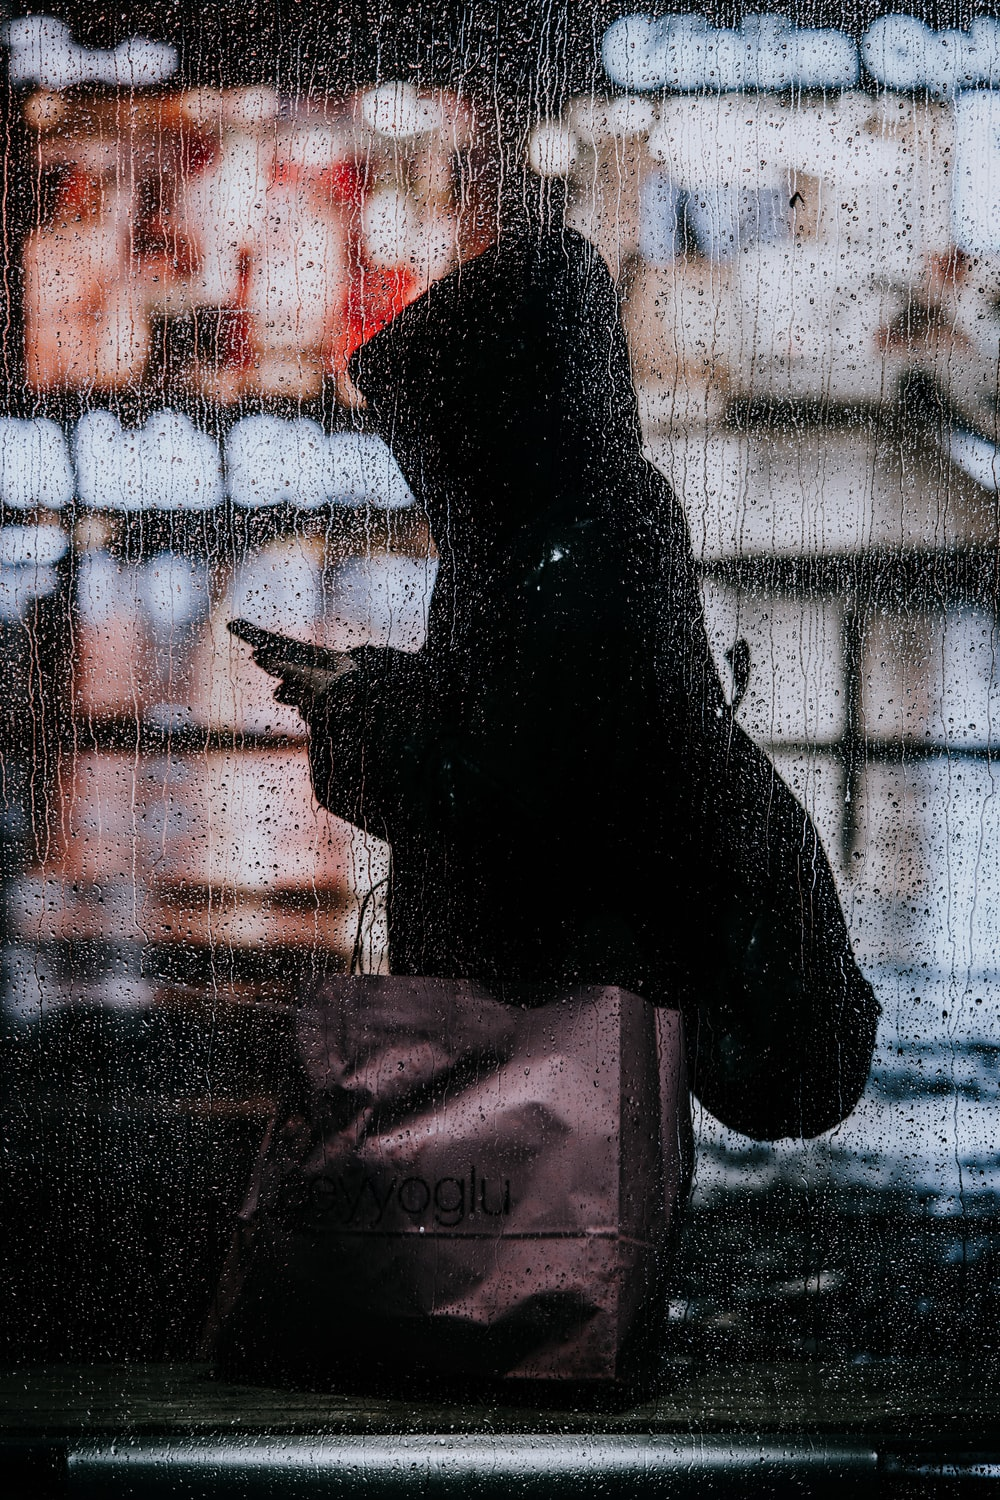 silhouette of person in front of glass window